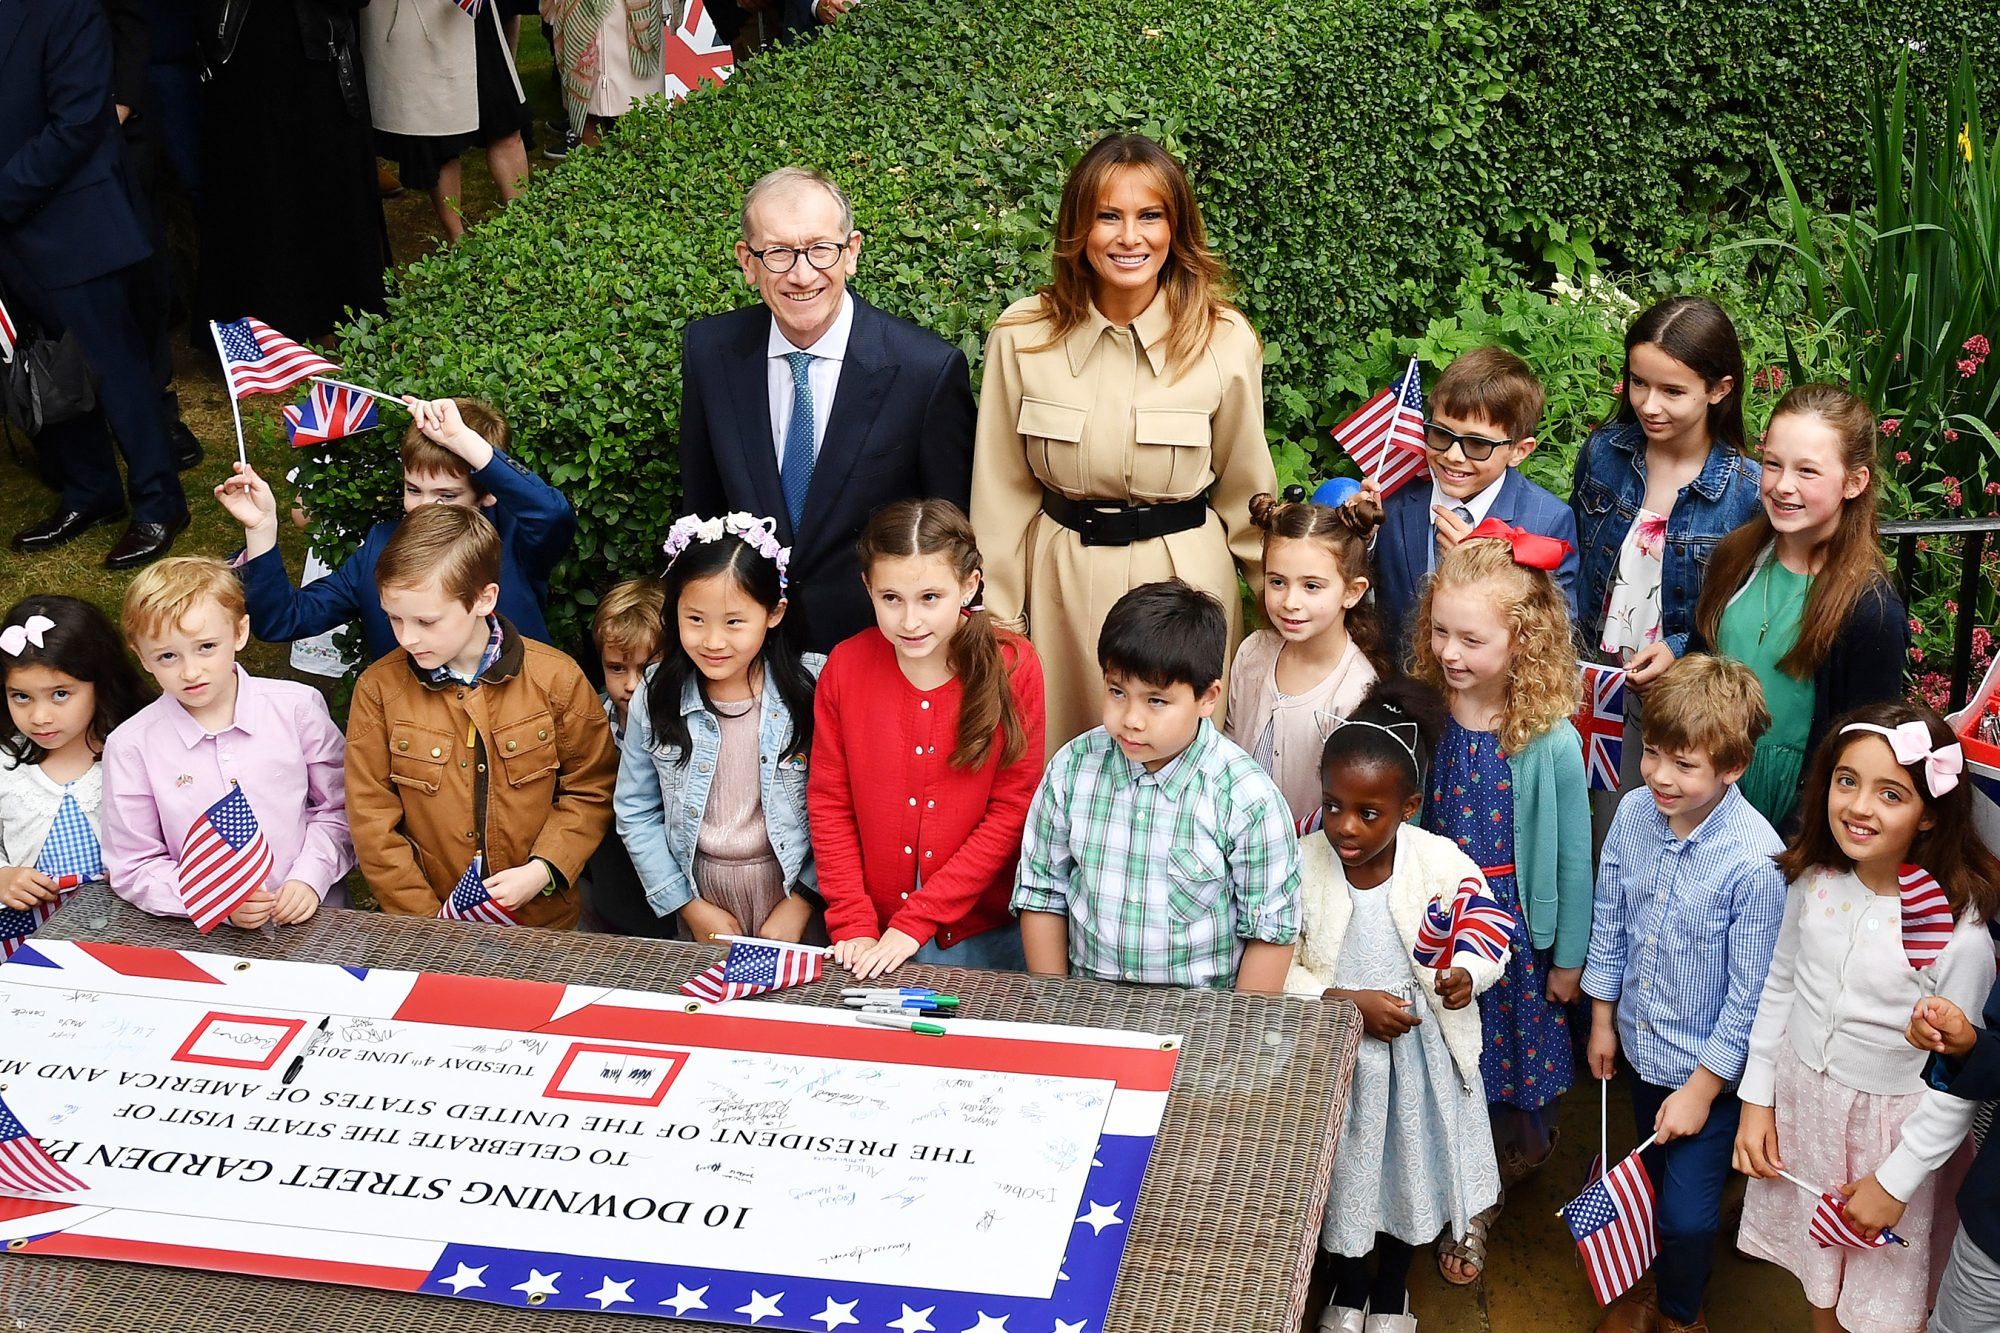 Philip May and First Lady Melania Trump attend a garden party for families of staff from No.10 and the US Embassy in London, at 10 Downing Street, during the second day of President Trump's State Visit on June 4, 2019 in London, England. President Trump's three-day state visit began with lunch with the Queen, followed by a State Banquet at Buckingham Palace, whilst today he will attend business meetings with the Prime Minister and the Duke of York, before travelling to Portsmouth to mark the 75th anniversary of the D-Day landings.